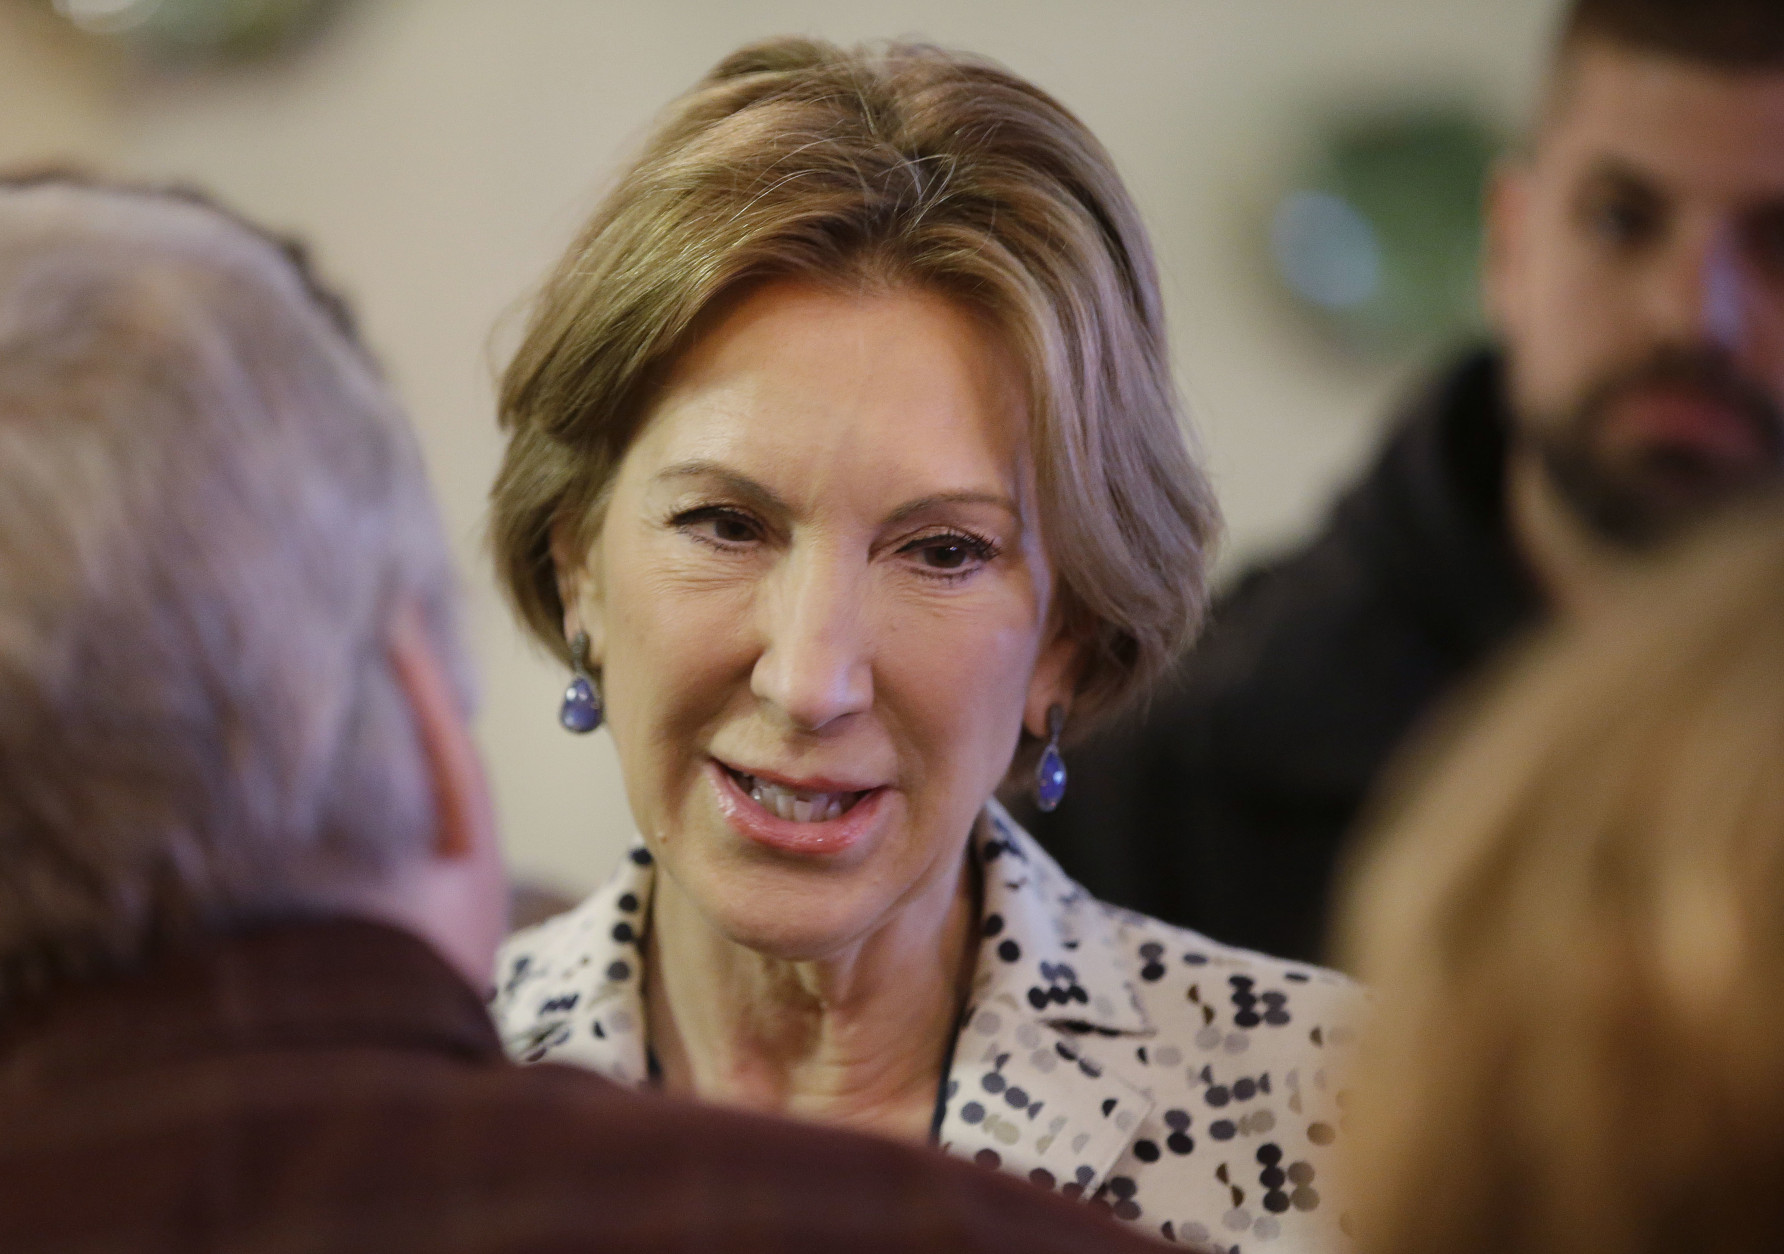 Vice-presidential candidate CarlyFiorina meets with supporters during a campaign stop at Lincoln Square Pancake House, Tuesday, May 3, 2016, in Westfield, Ind. (AP Photo/Darron Cummings)